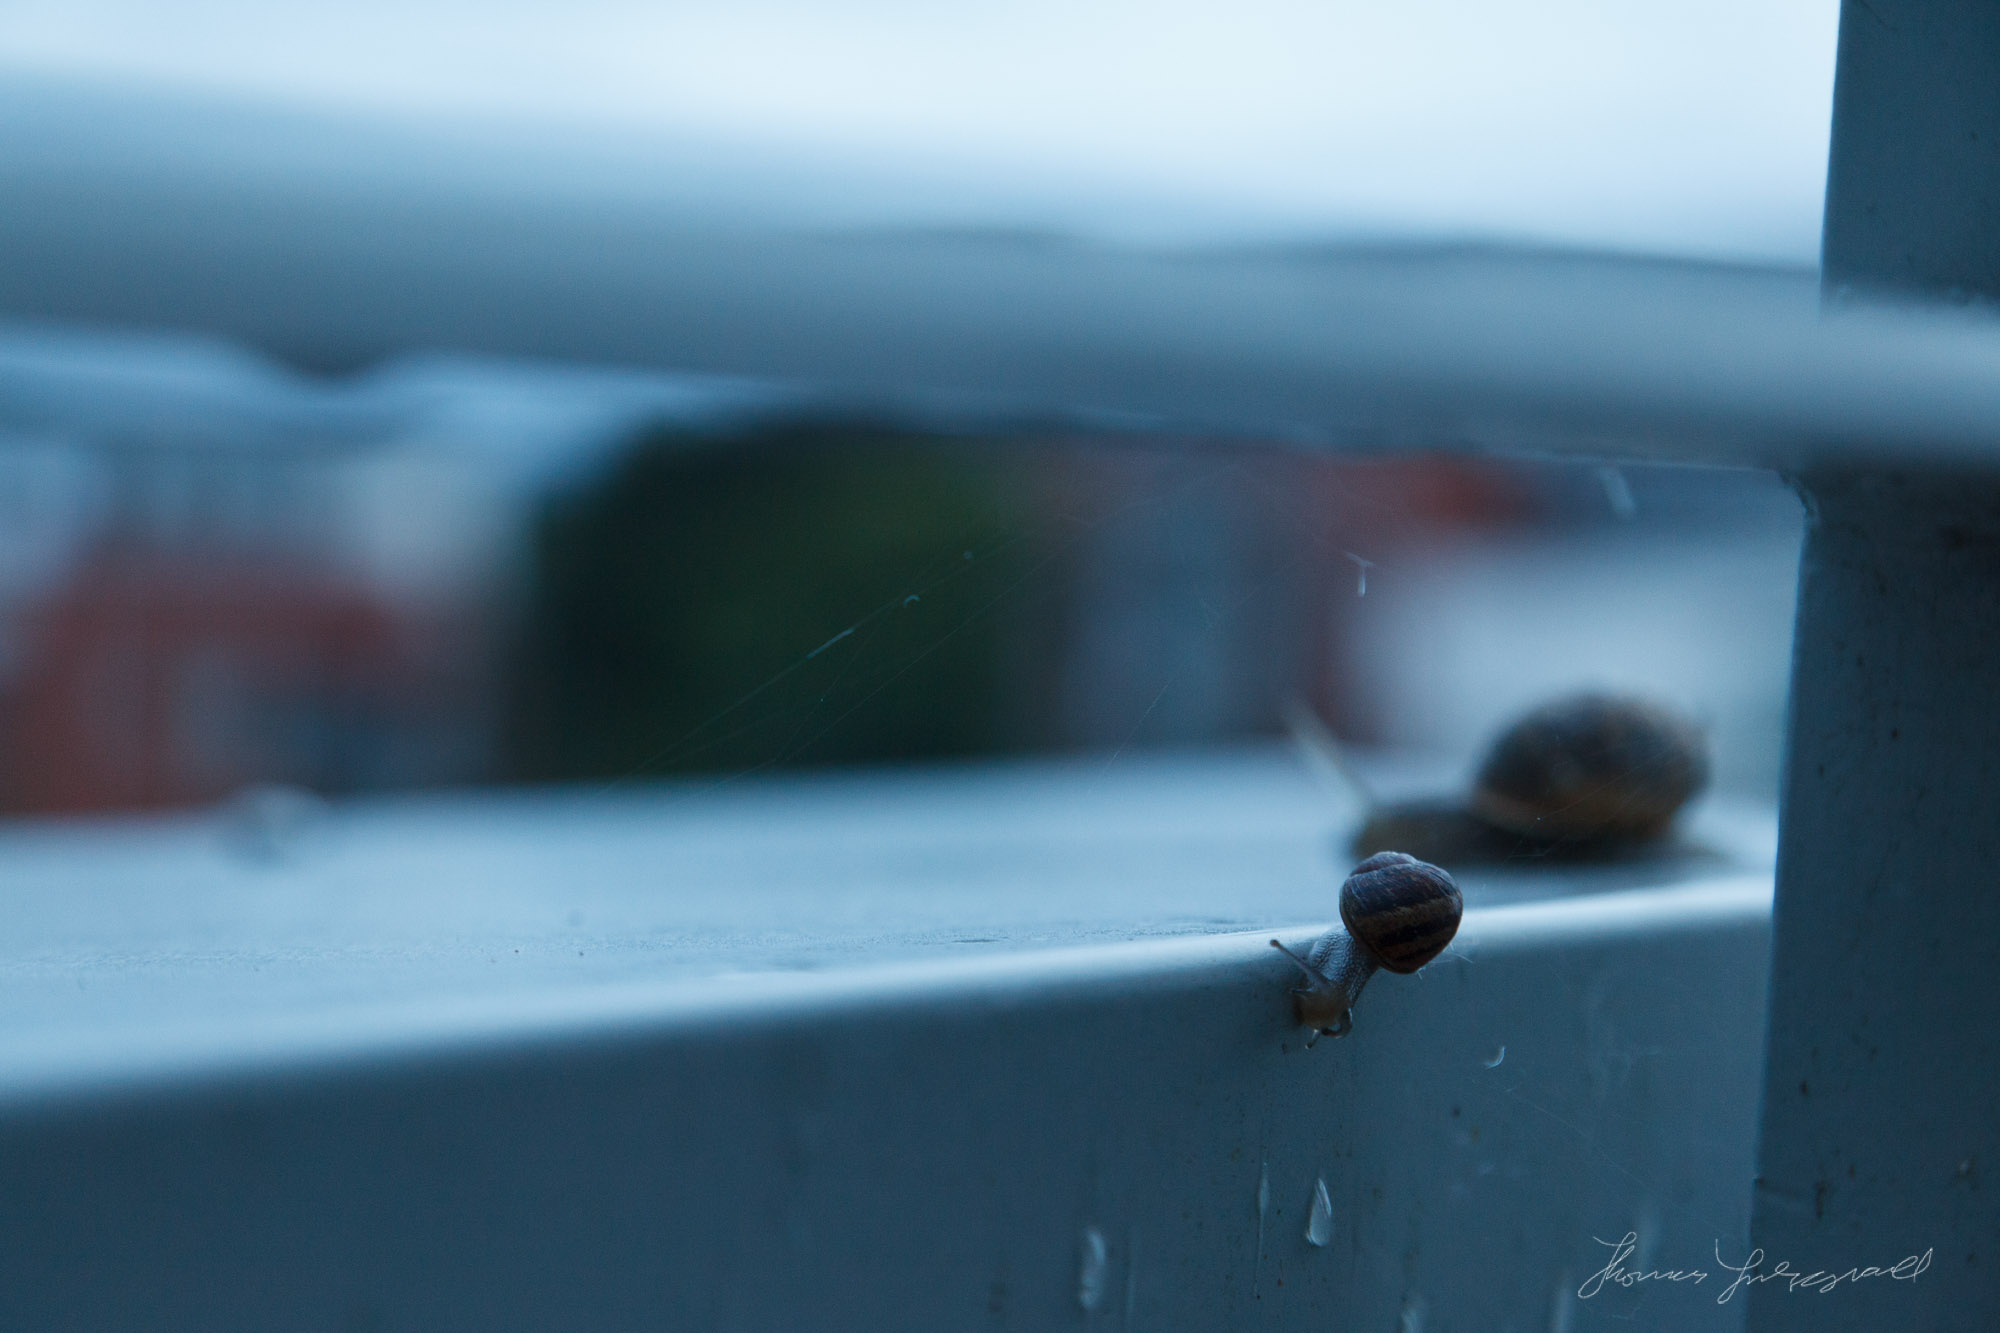 Snail on the edge